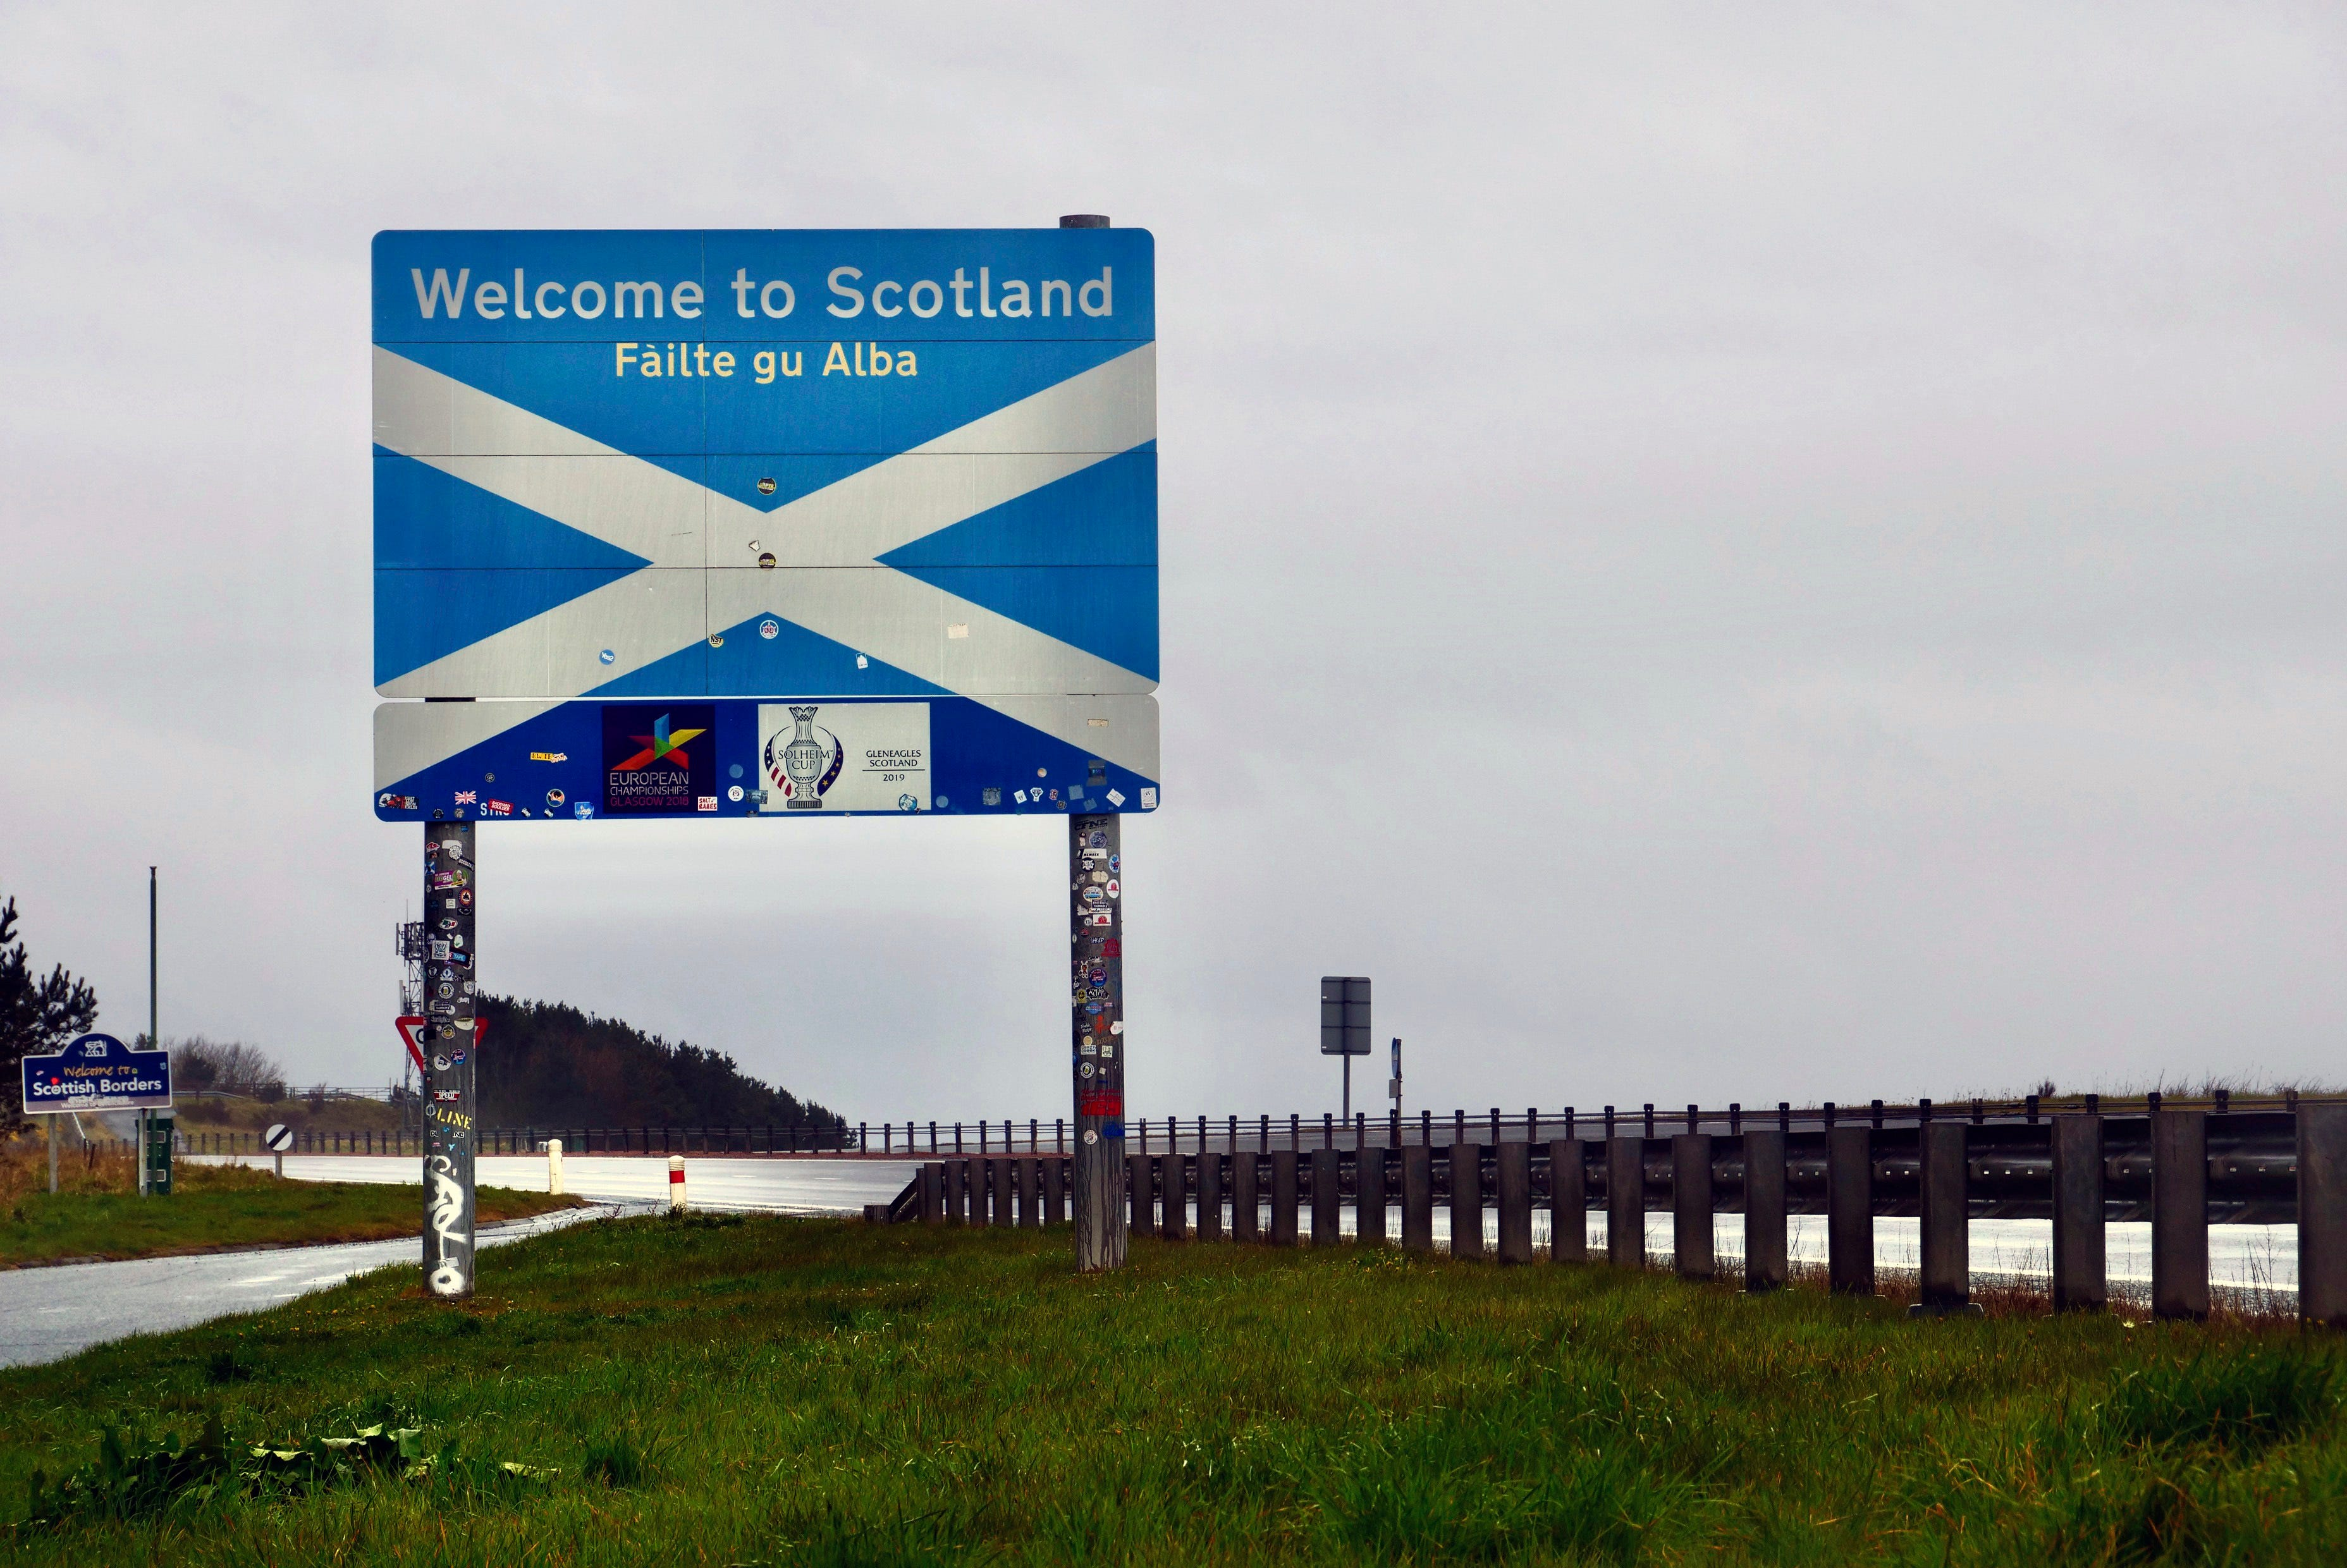 COVID-19 overshadows independence in key Scottish election 2